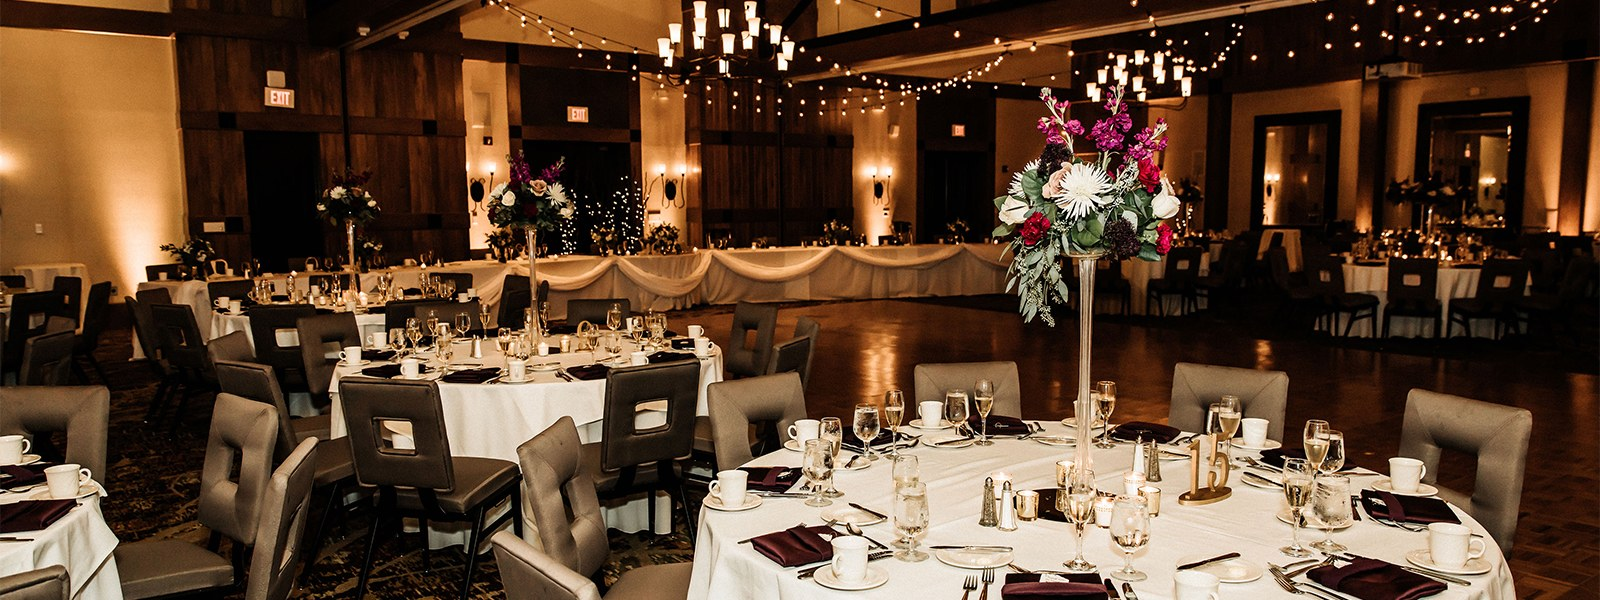 Room of tables for wedding event location in pennsylvania